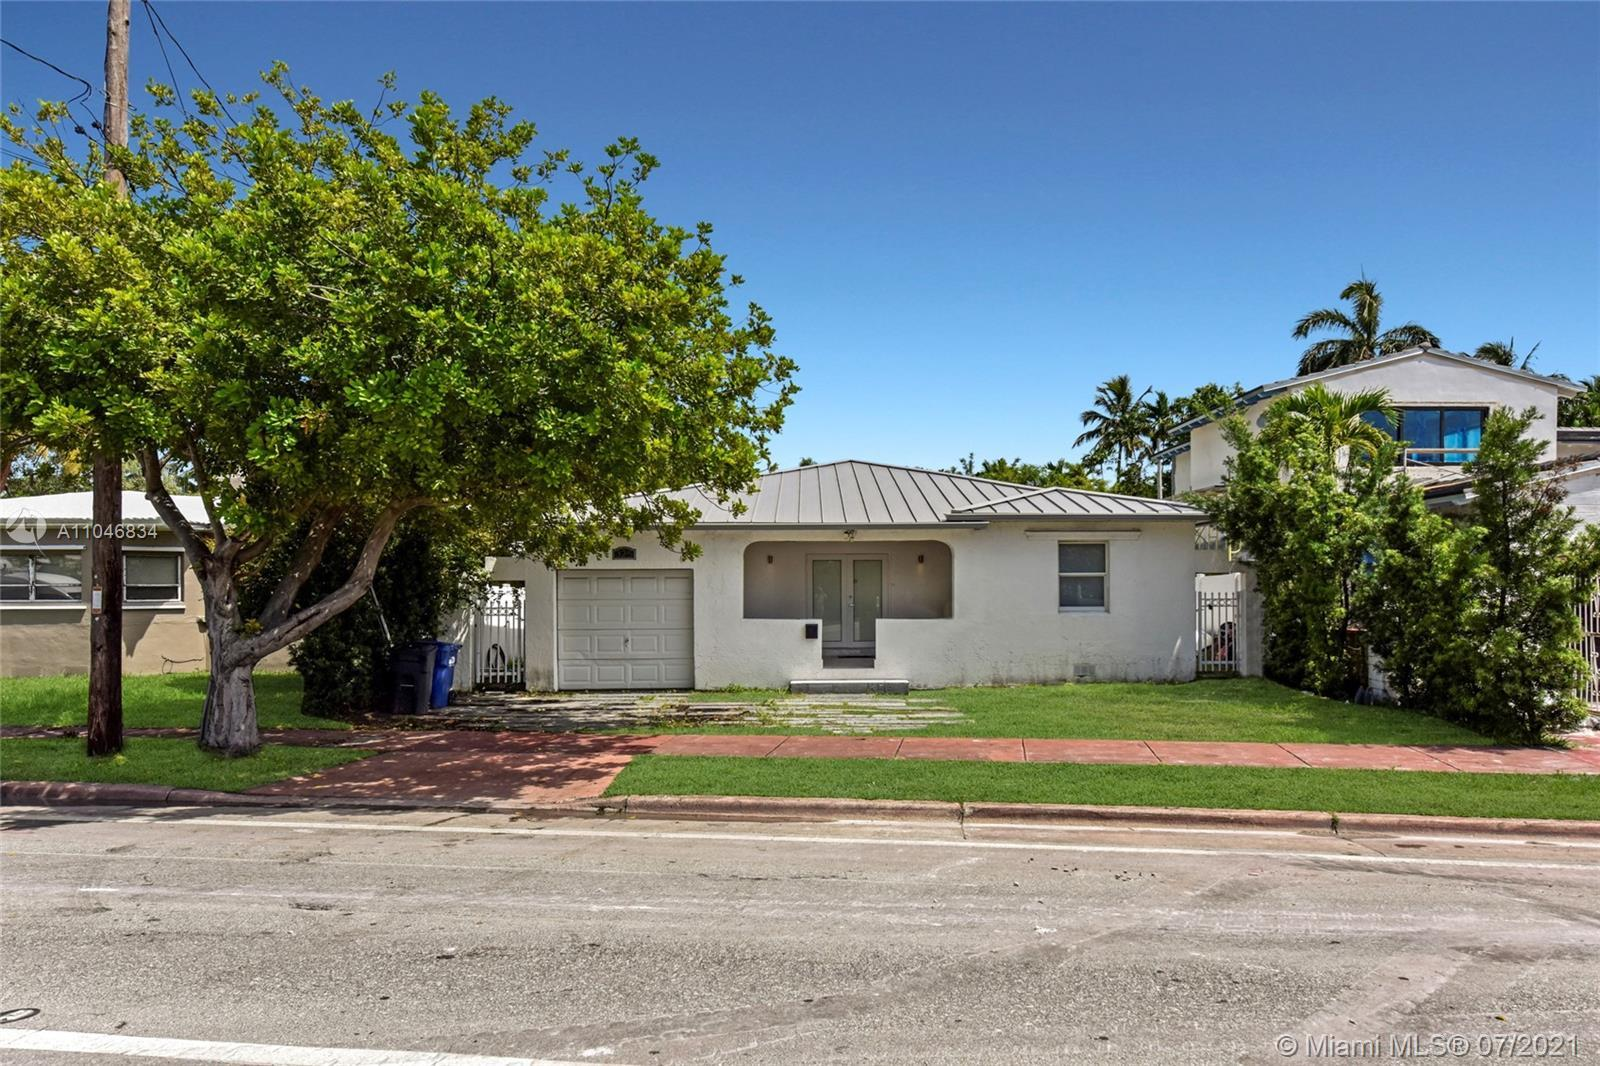 Live the quintessential Miami Beach lifestyle in this lovely 3 bedroom, 2.5 bathroom house right off